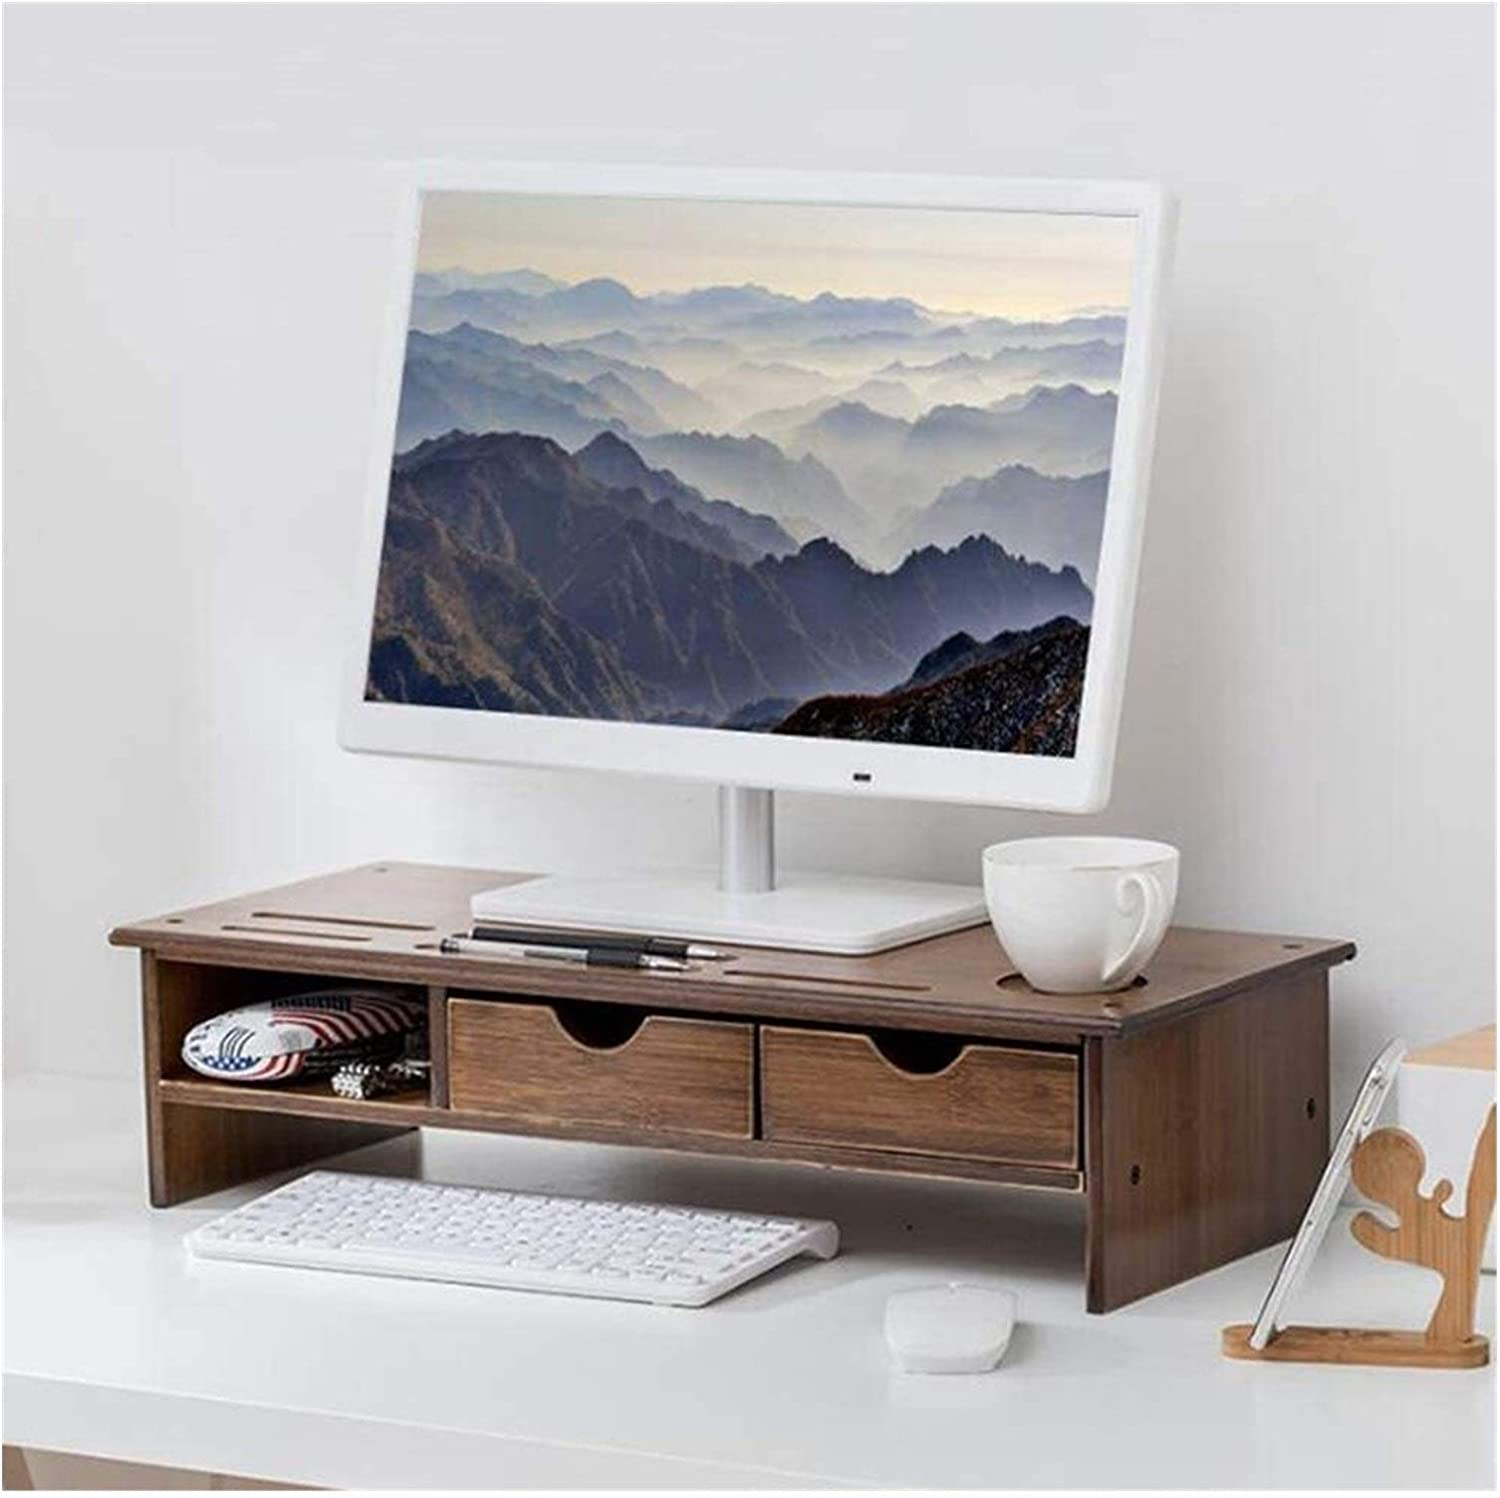 ZhanMa Monitor Store Risers Computer Stand Popular E Riser with Drawer